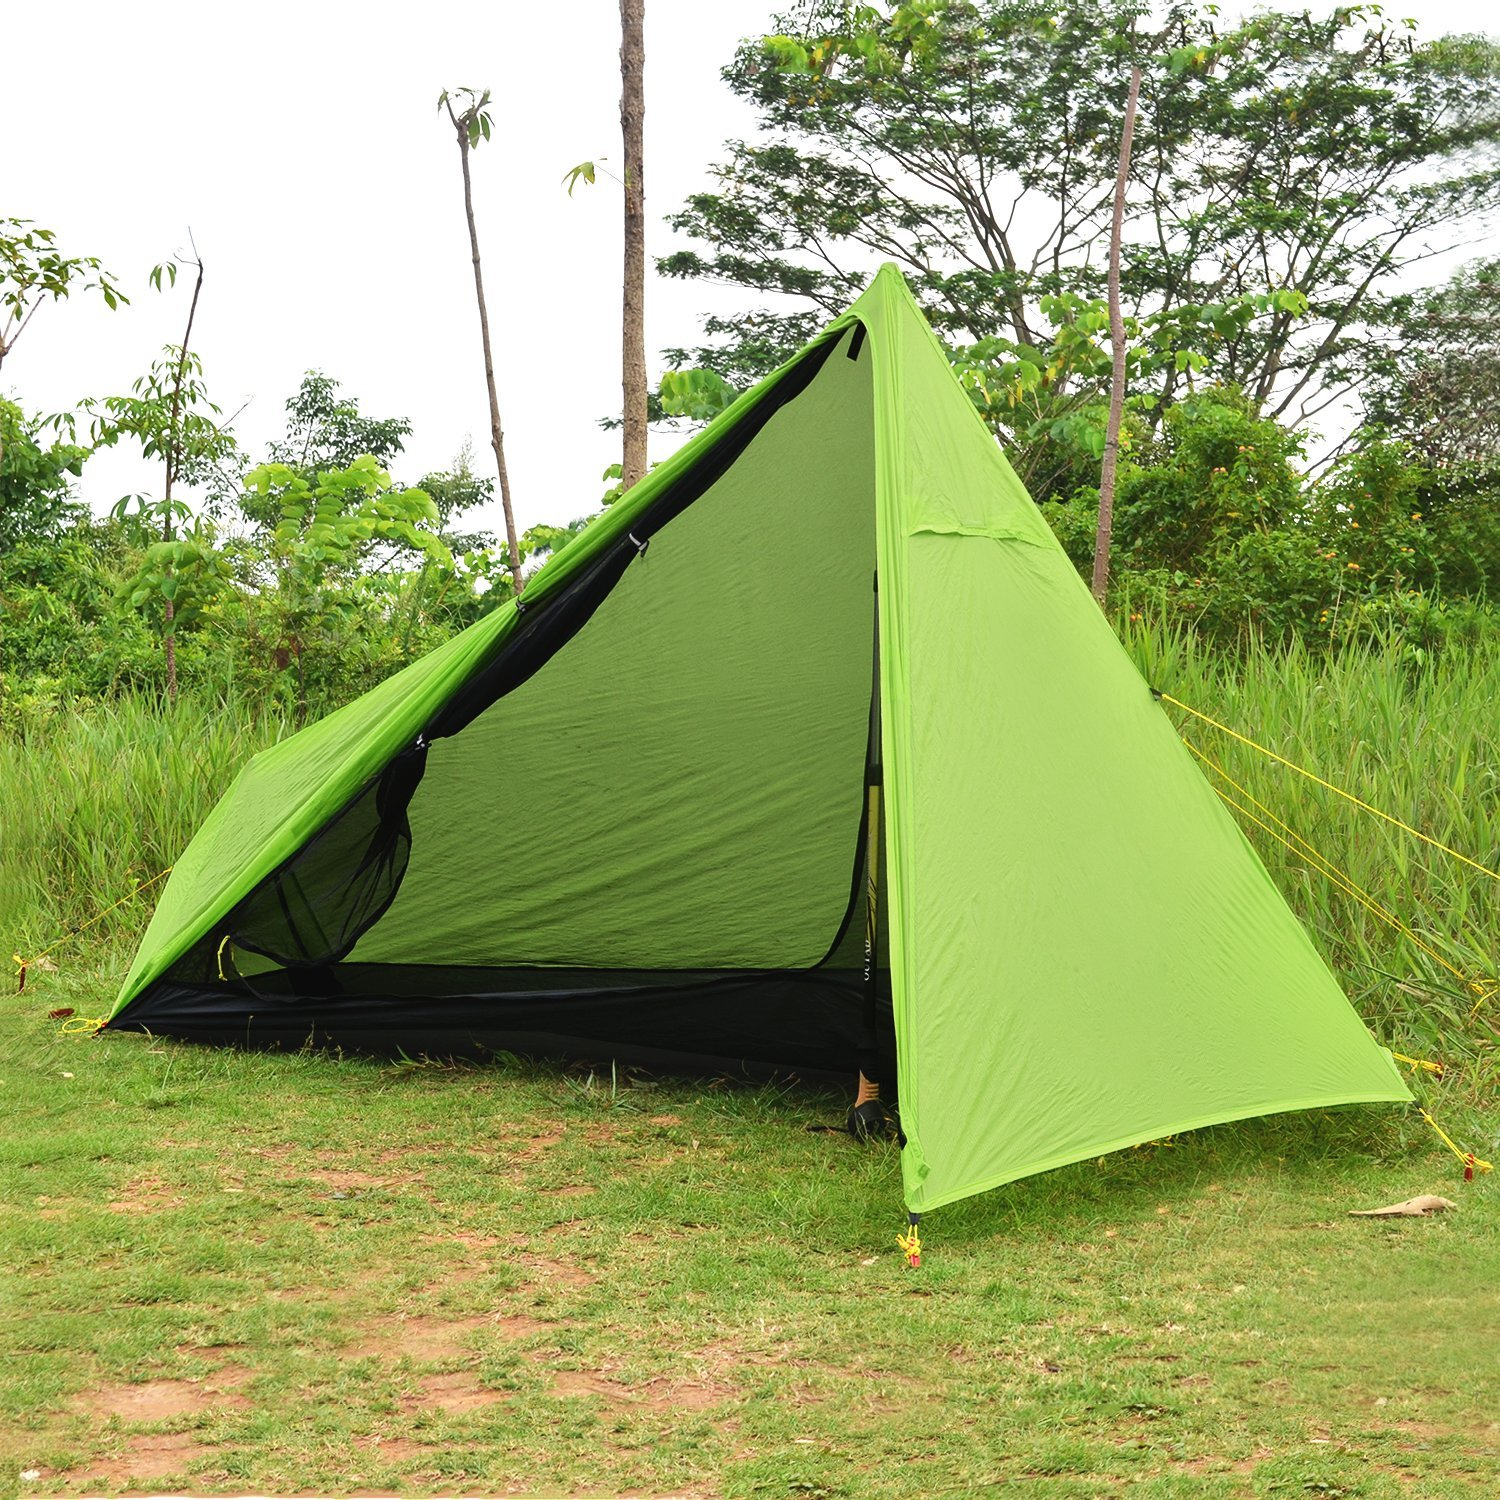 & Best One Person Tent Under $100: 5 Solo Tent Reviews